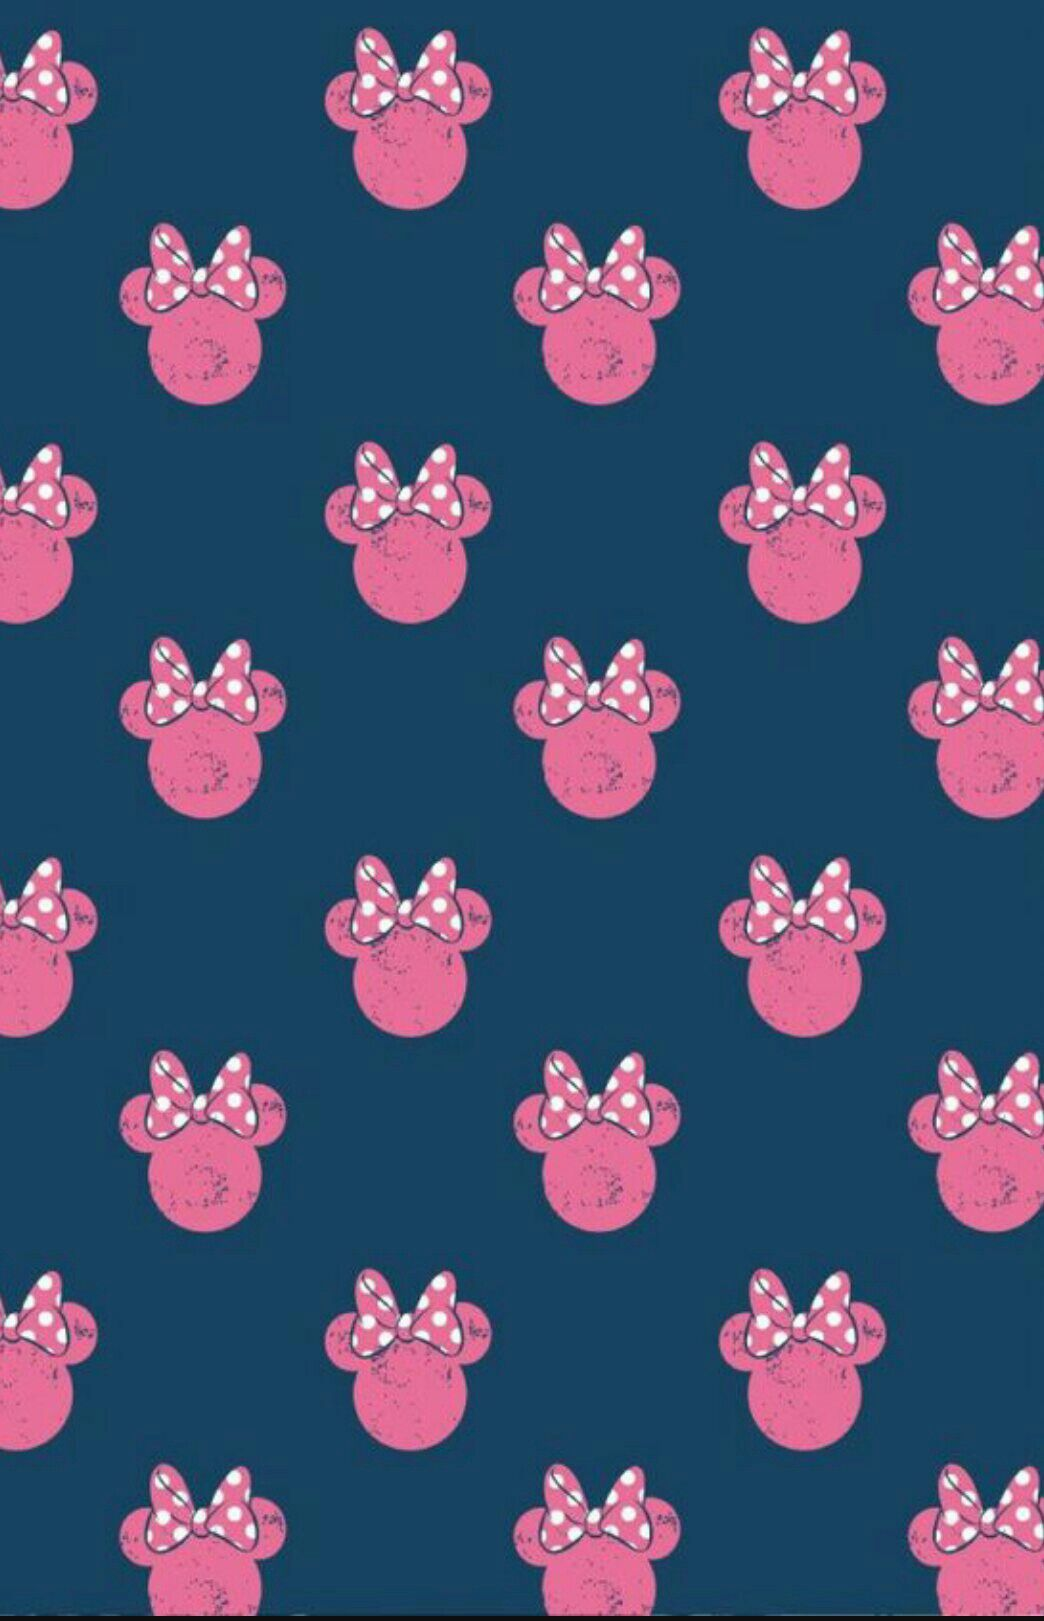 Wallpaper iphone minnie mouse - Mickey And Minnie Mouse Wallpapers Wallpaper Minnie Mouse